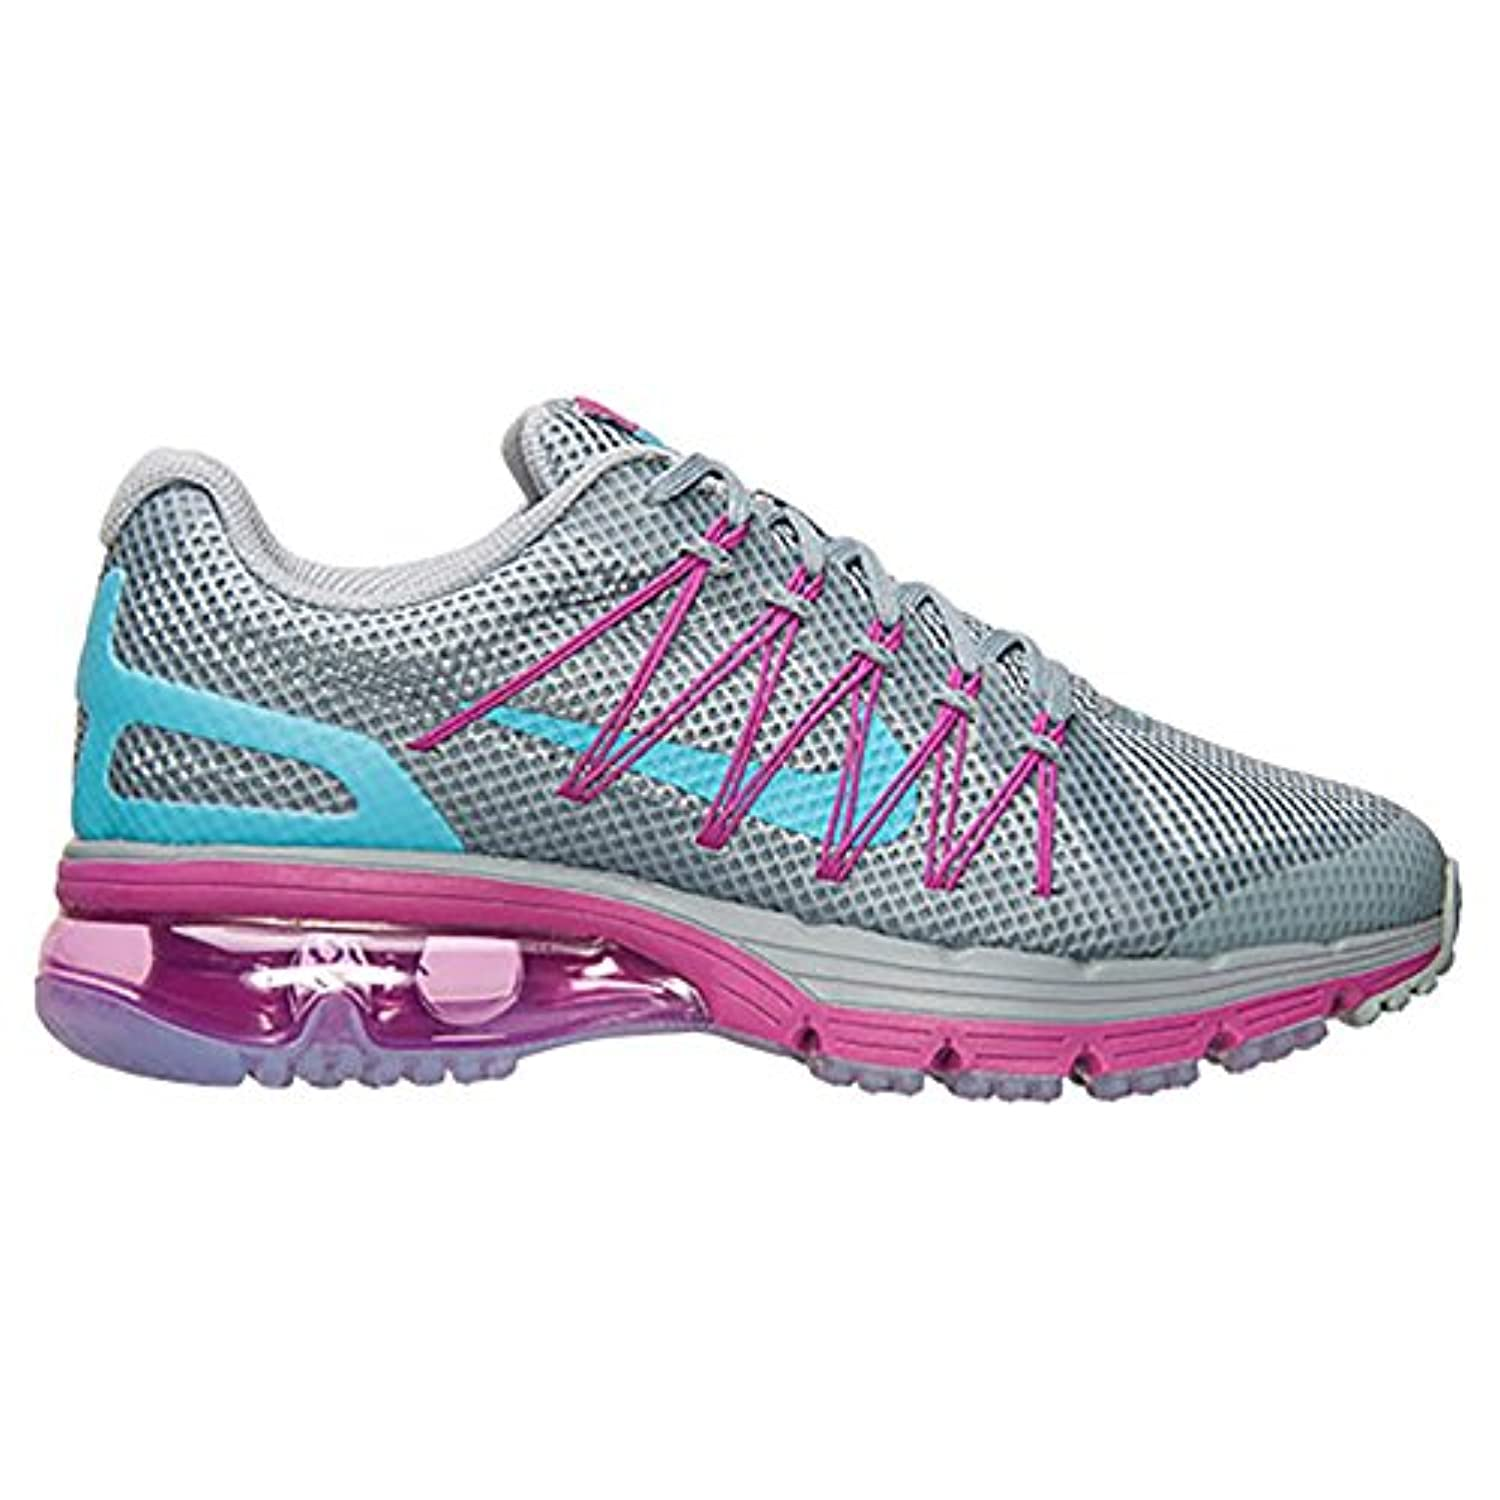 100% authentic 86212 6b1ce ... Nike Air Max Excellerate 3 703073-046 Grey Clearwater Fuchsia Flash  Women s Running ...